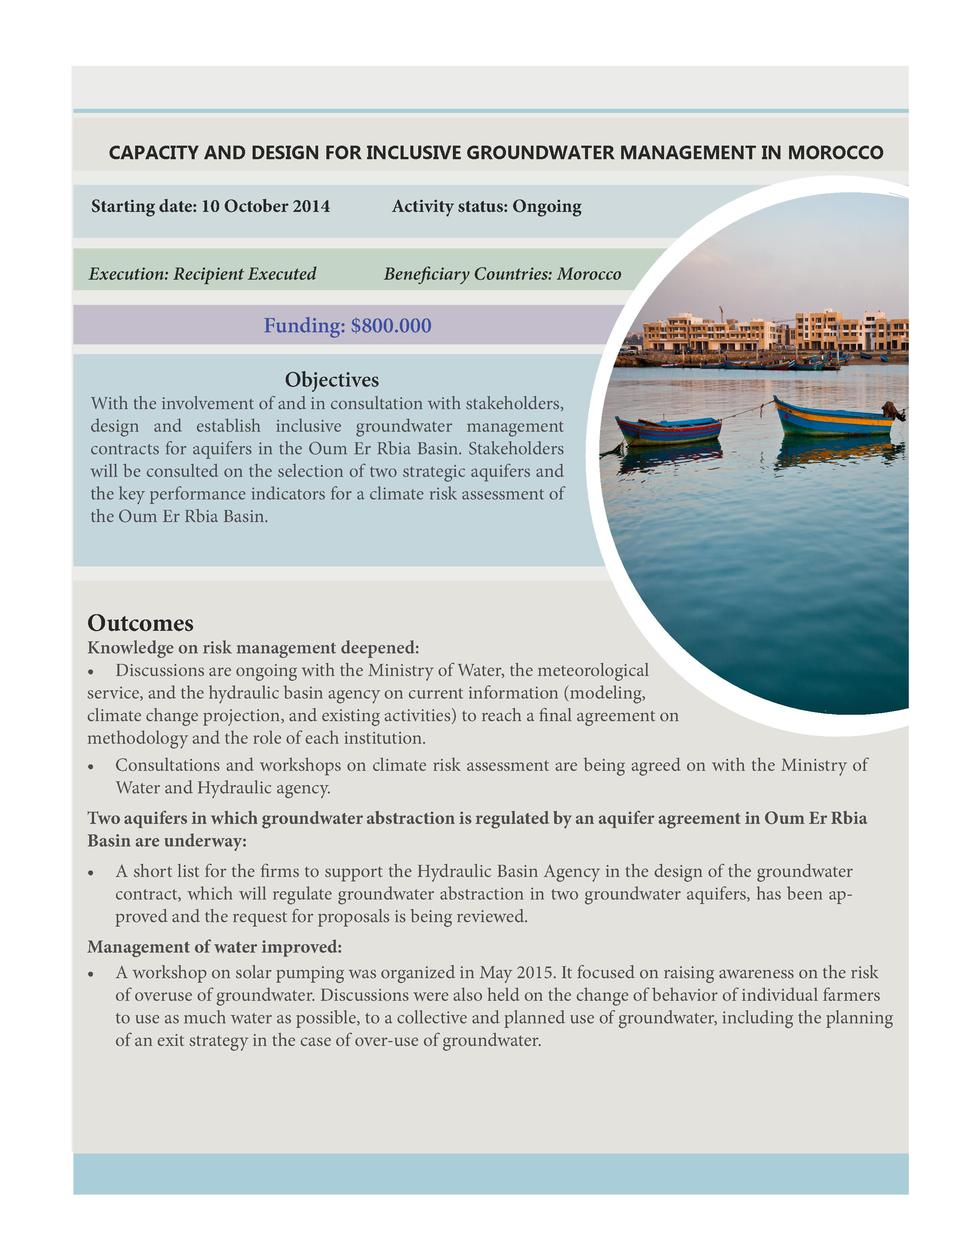 CAPACITY AND DESIGN FOR INCLUSIVE GROUNDWATER MANAGEMENT IN MOROCCO Starting date  10 October 2014 Execution  Recipient Ex...